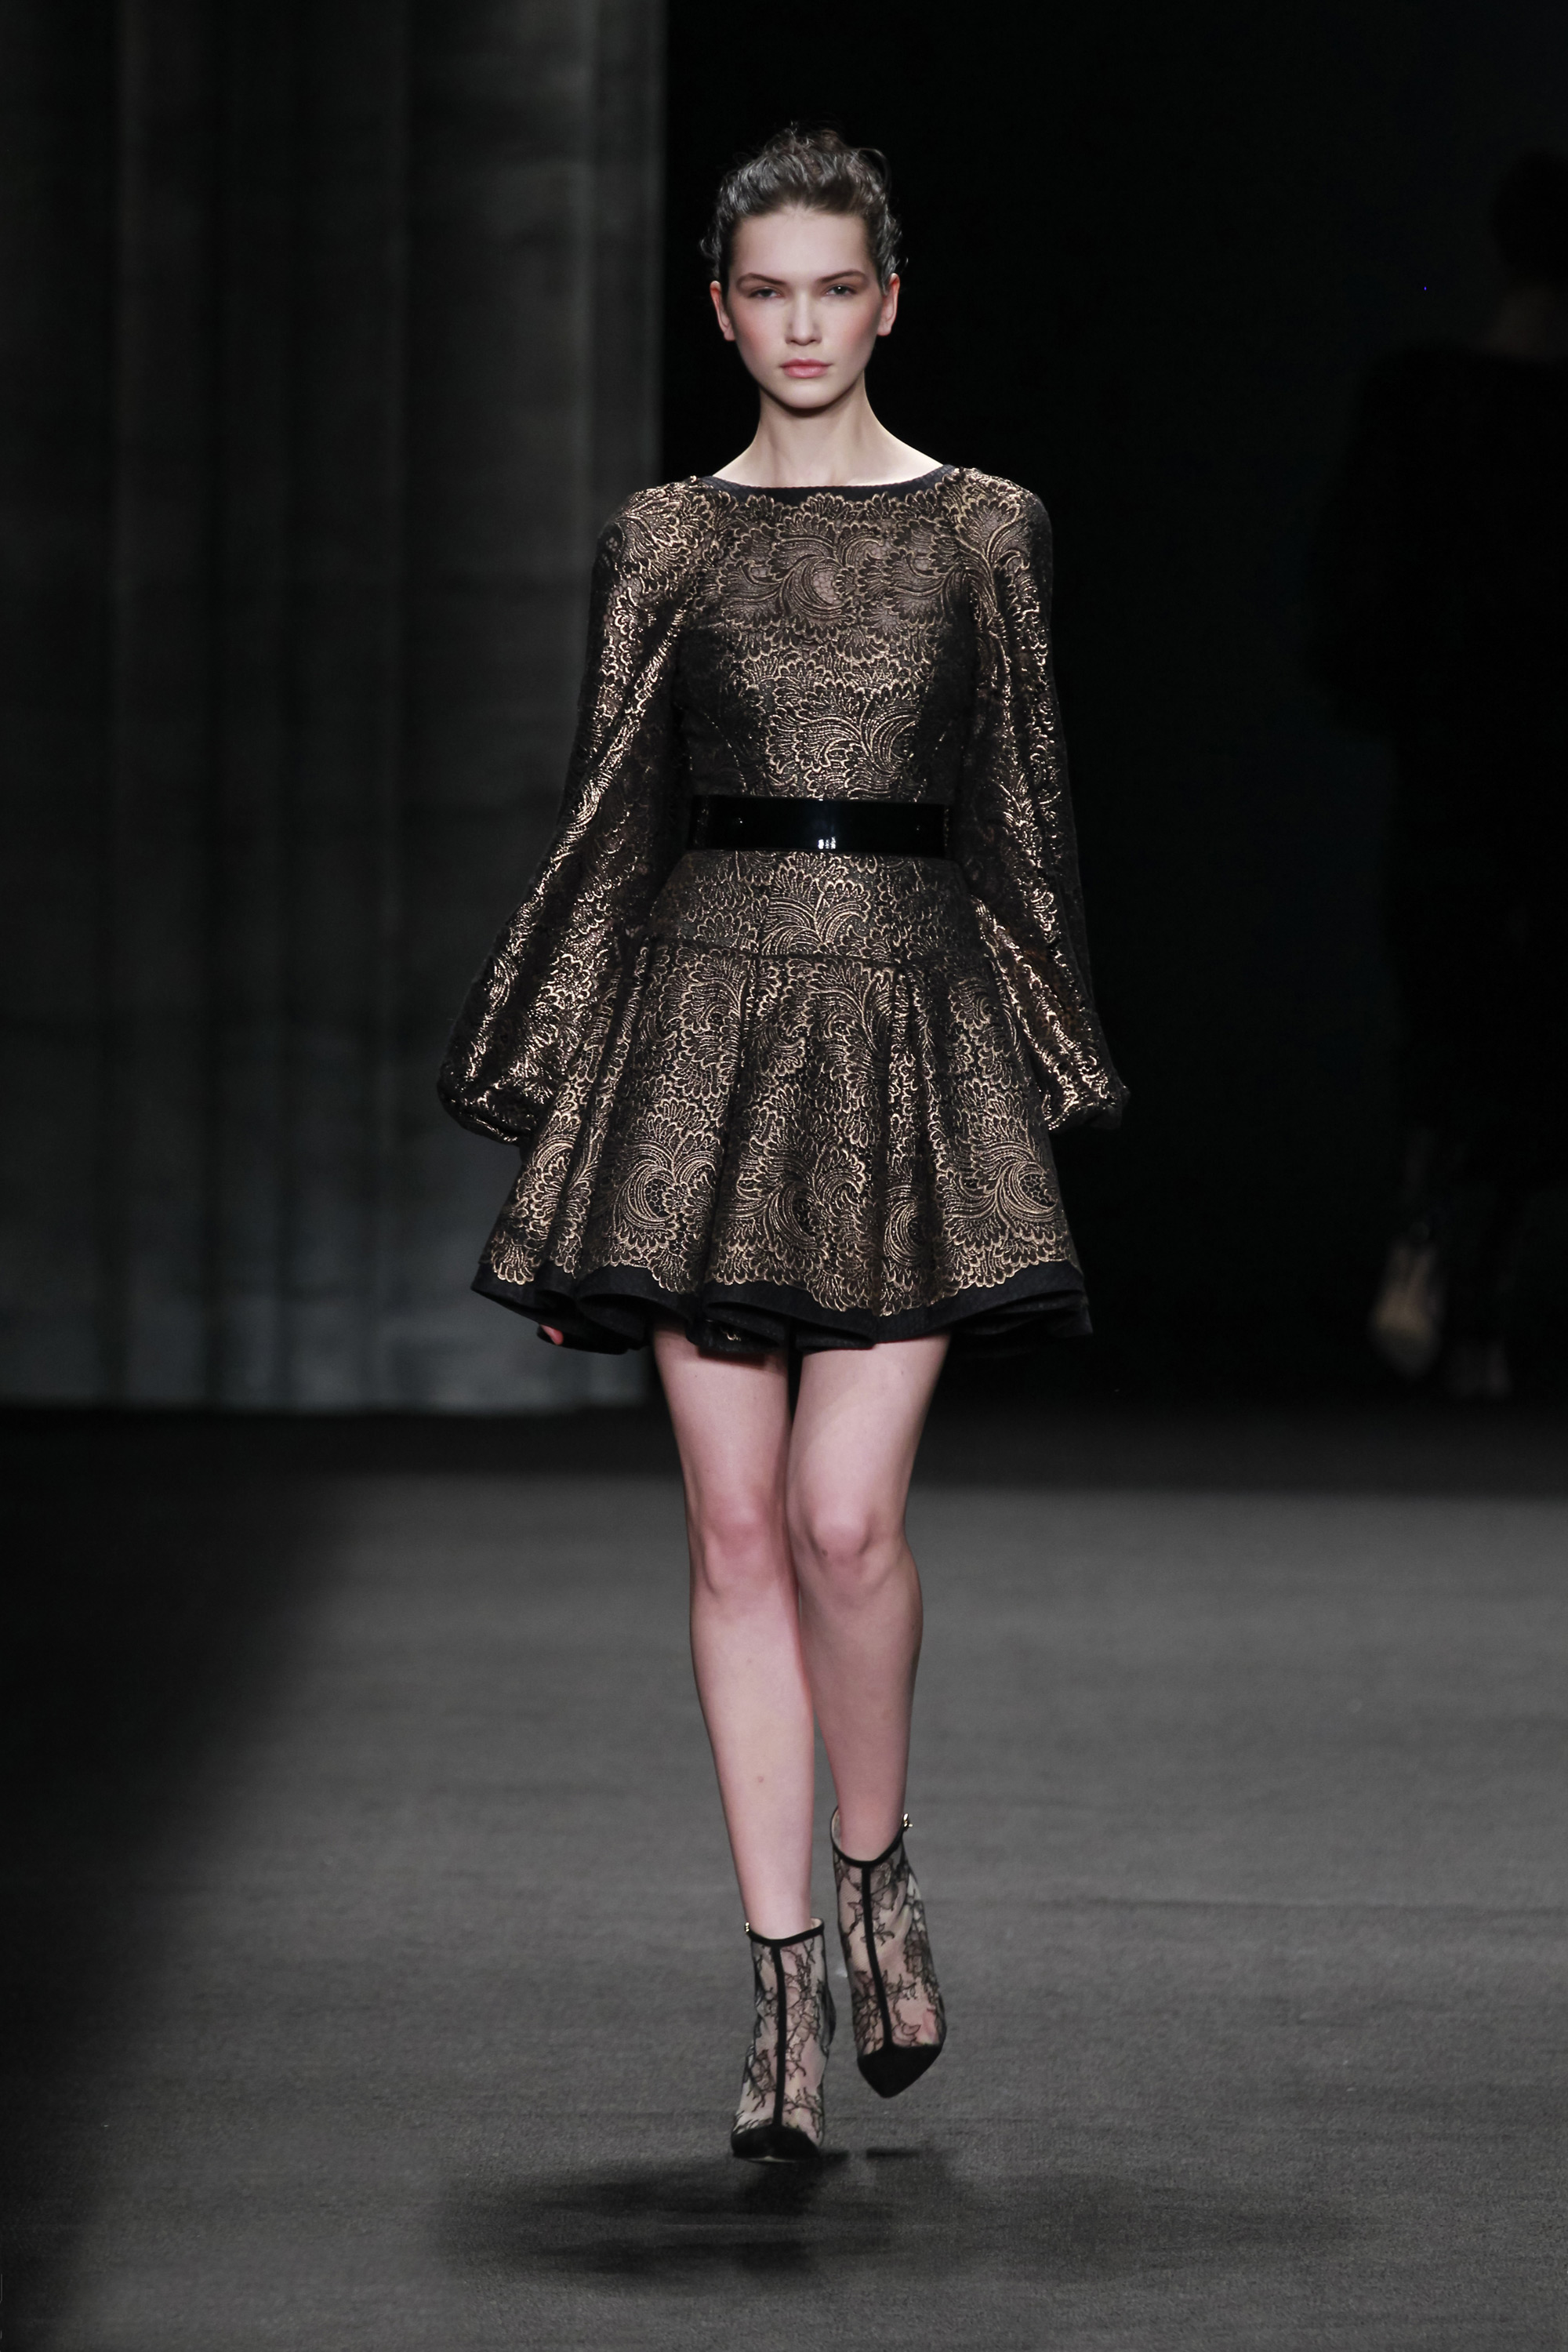 28_fw14dlr_lhuillier_306